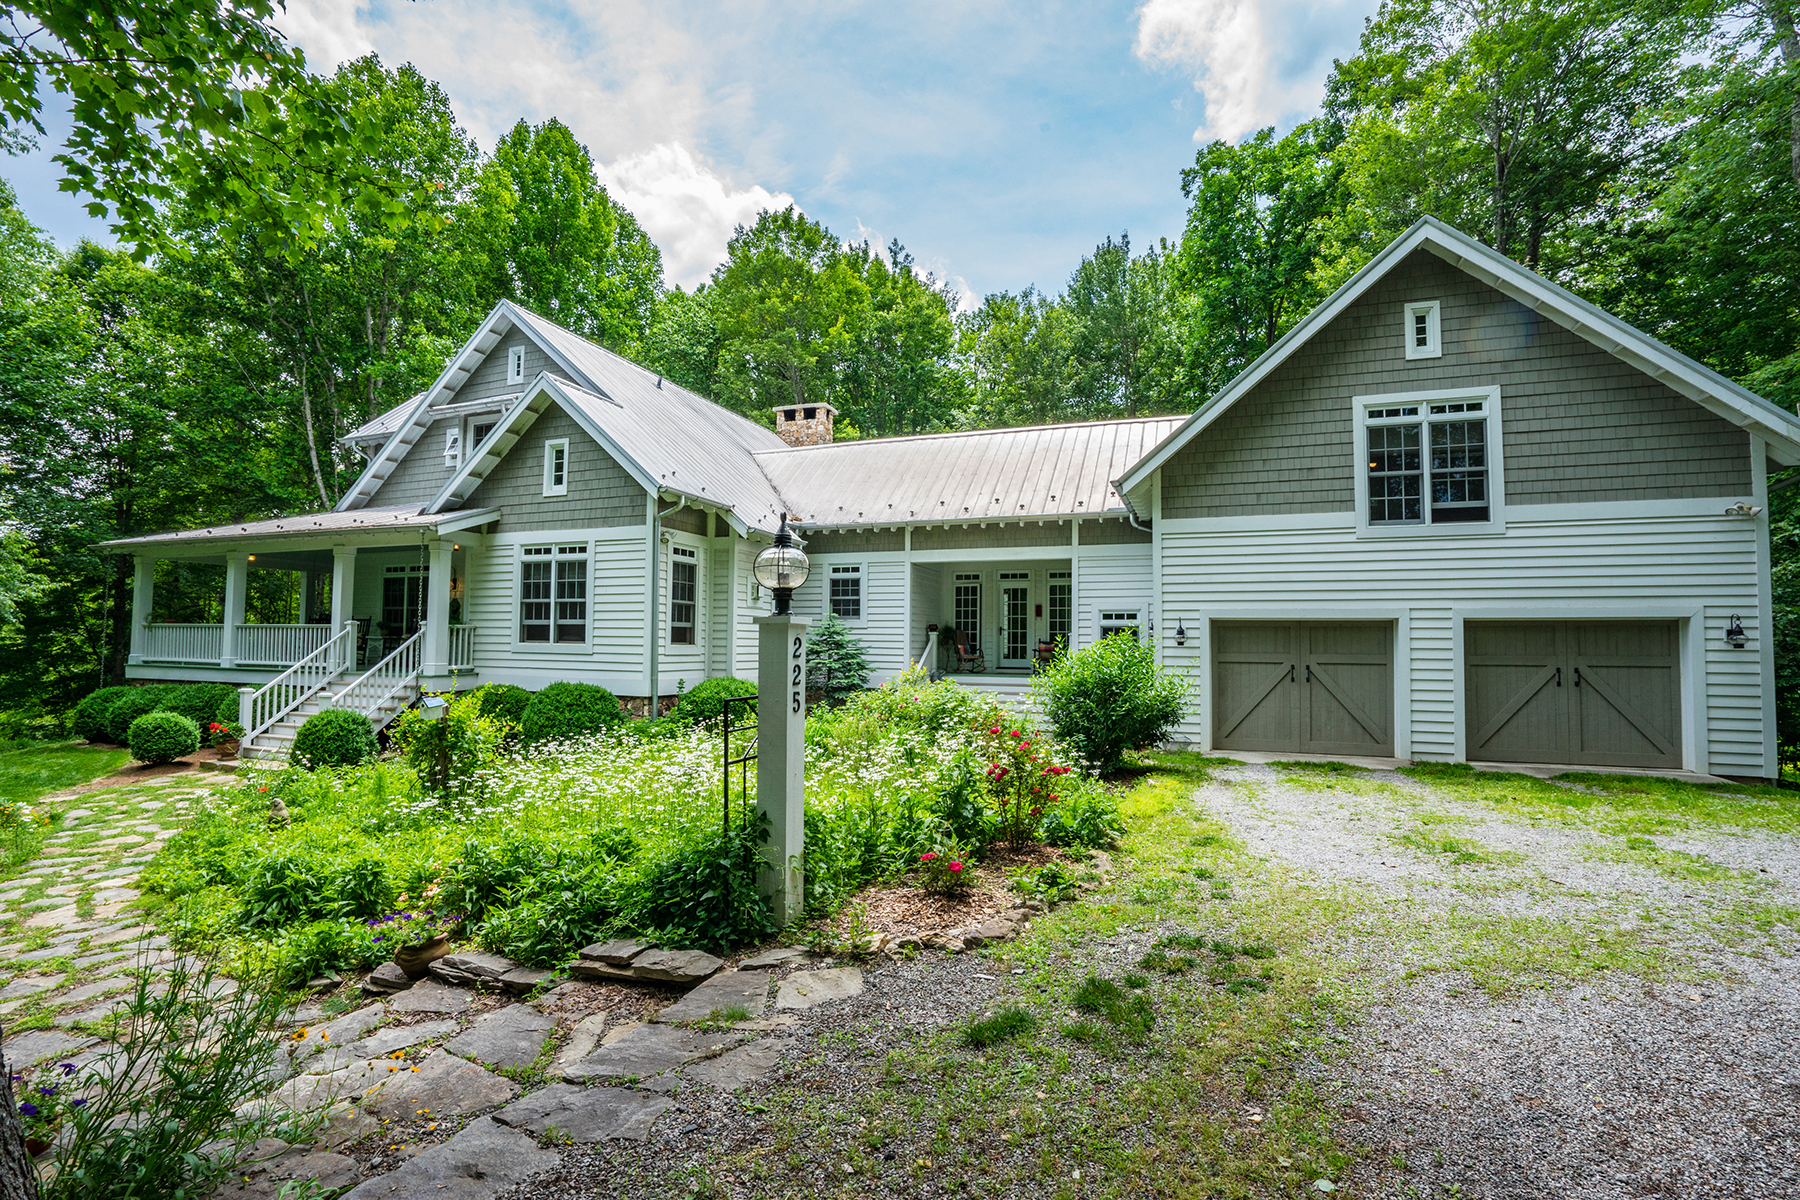 Single Family Home for Sale at CRUMPLER - THE RIDGE AT CHESTNUT HILL 225 Deer Thicket Ln Crumpler, North Carolina, 28617 United States